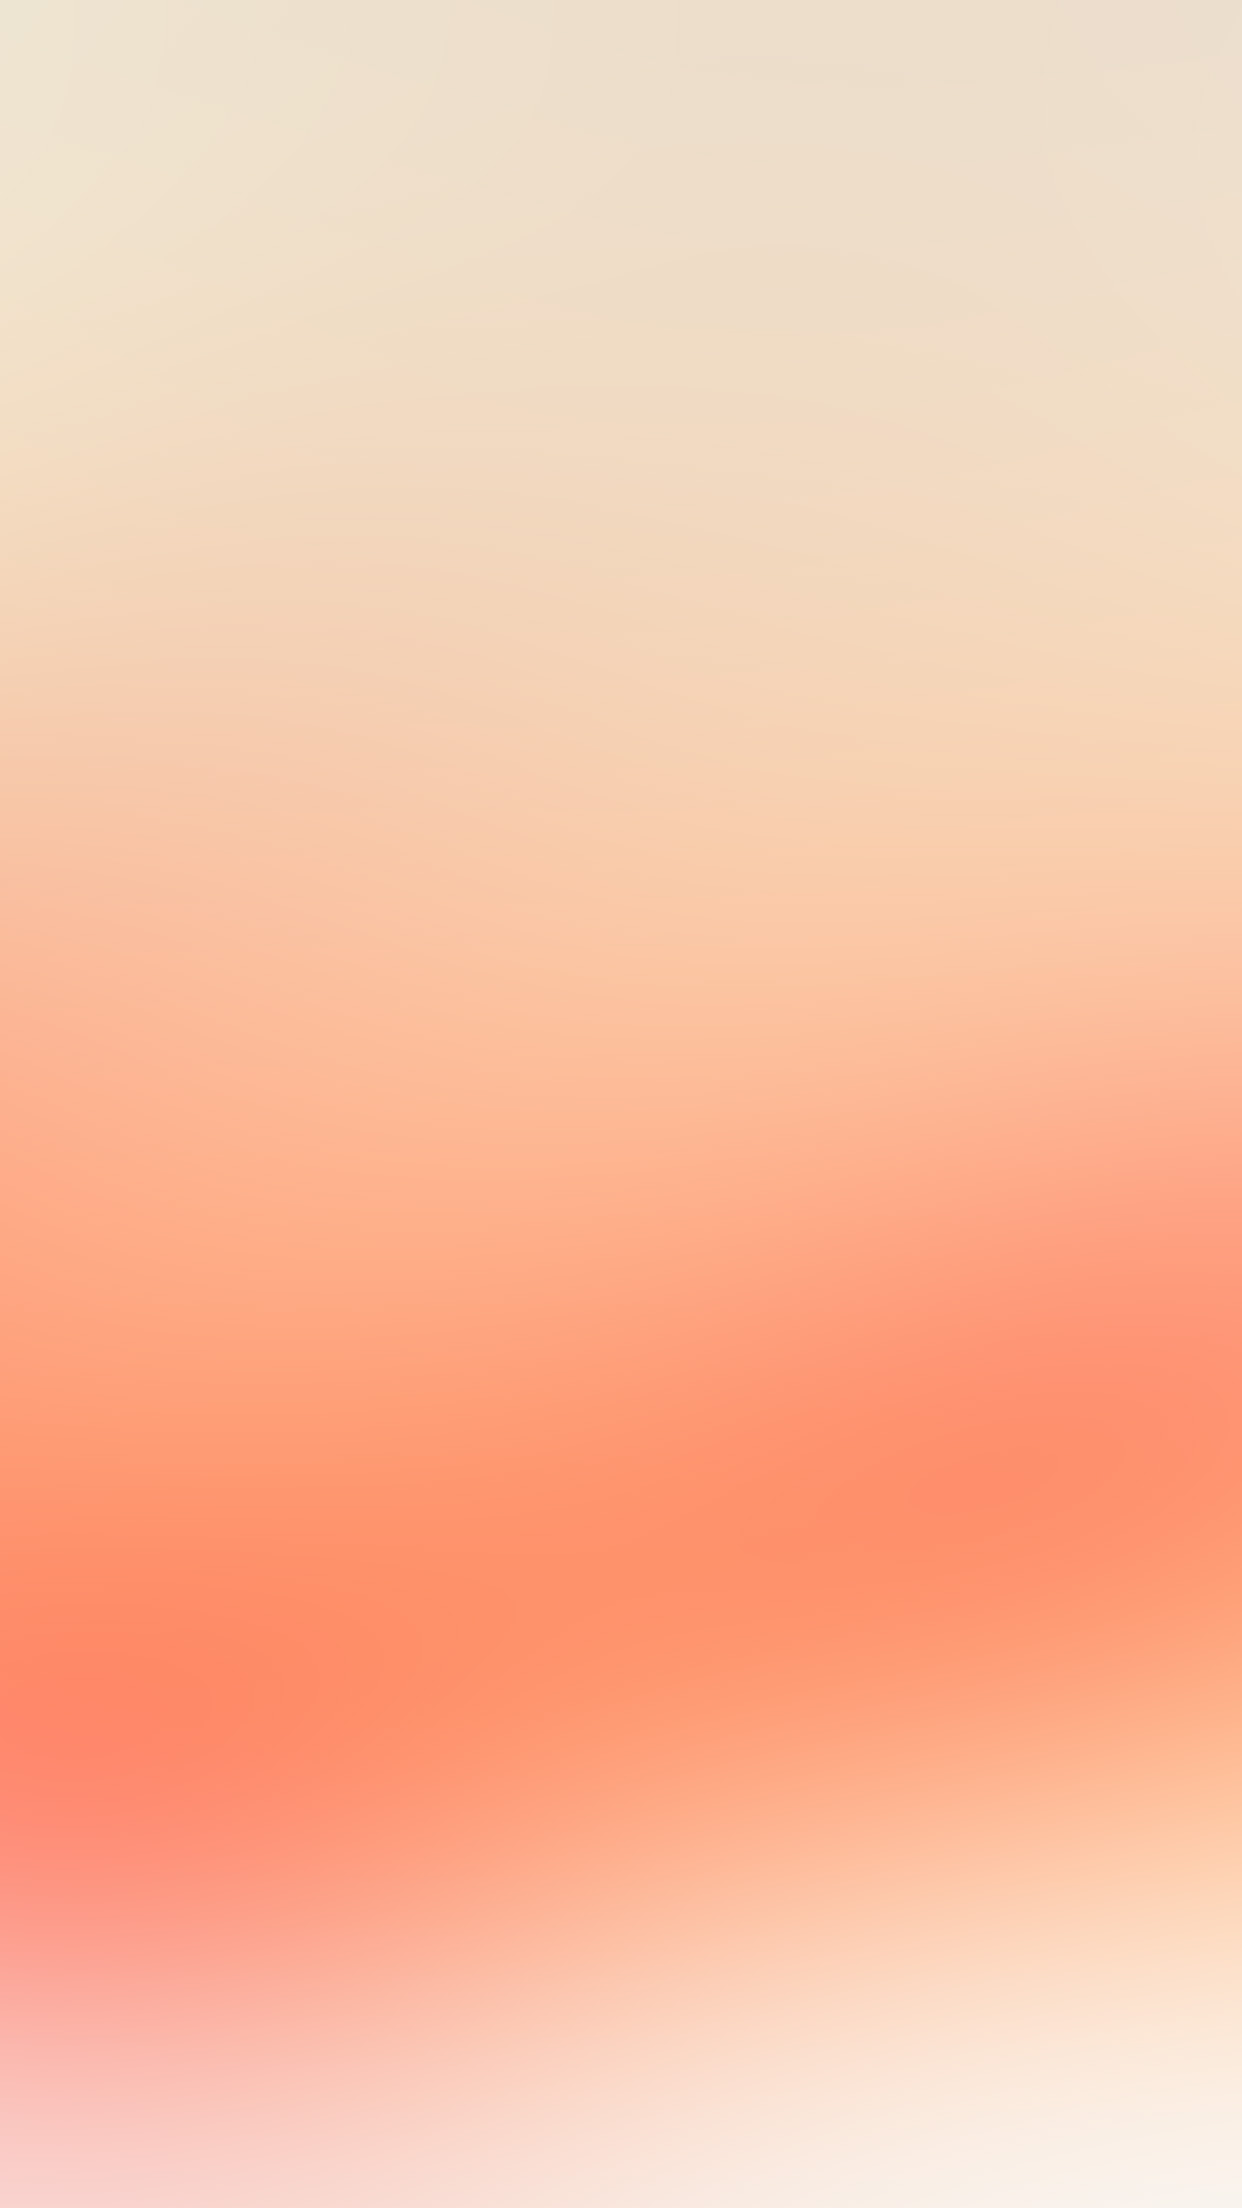 Ipad Pro Wallpaper Hd Sh01 Peach Fruit Gradation Blur Papers Co